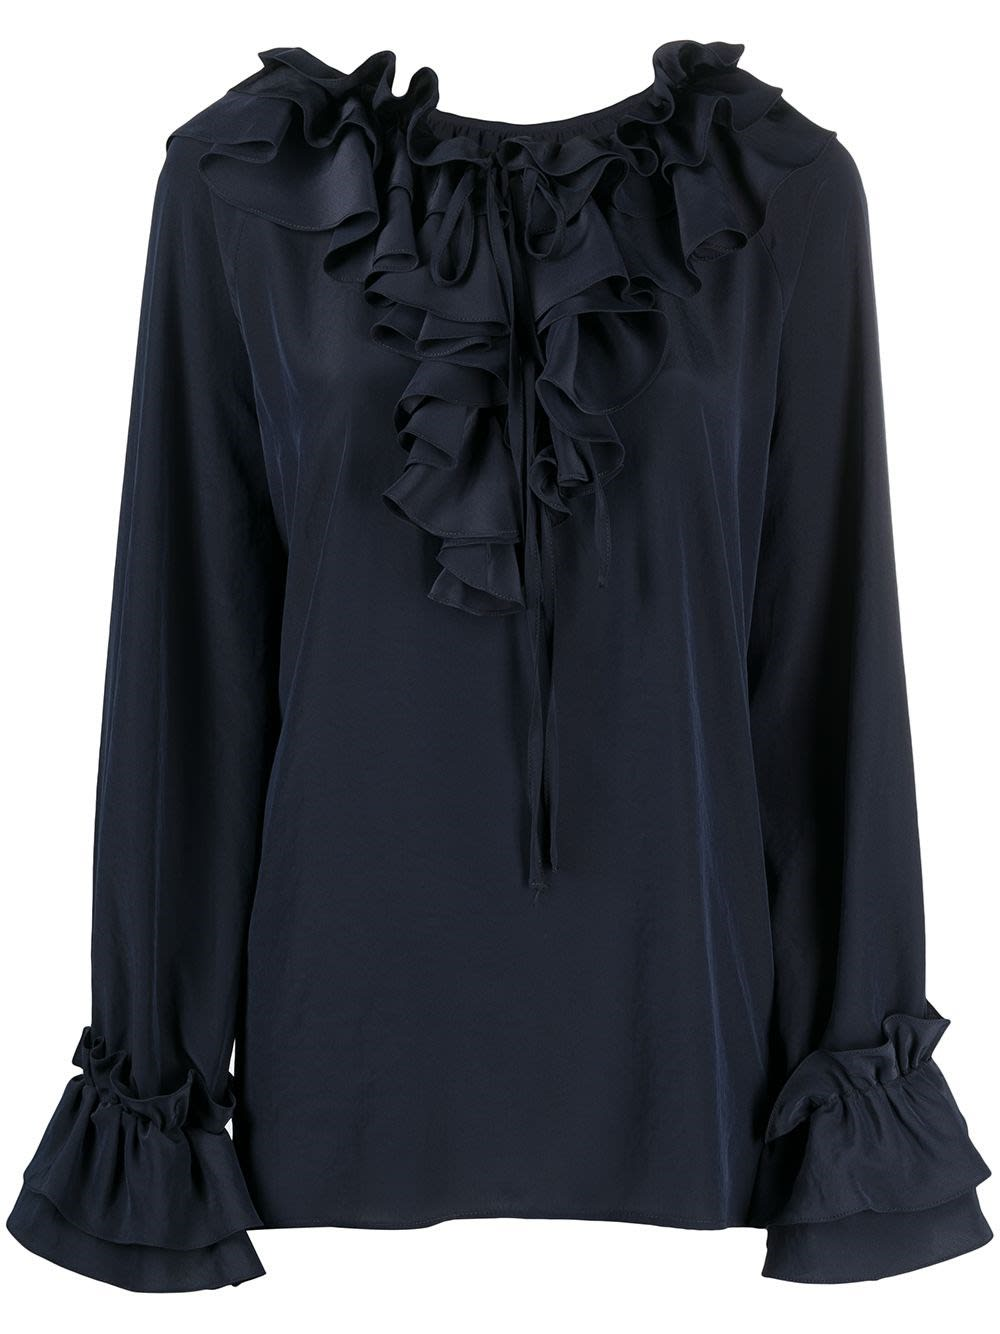 P.a.r.o.s.h. BLUE BLOUSE WITH RUFFLES DETAIL